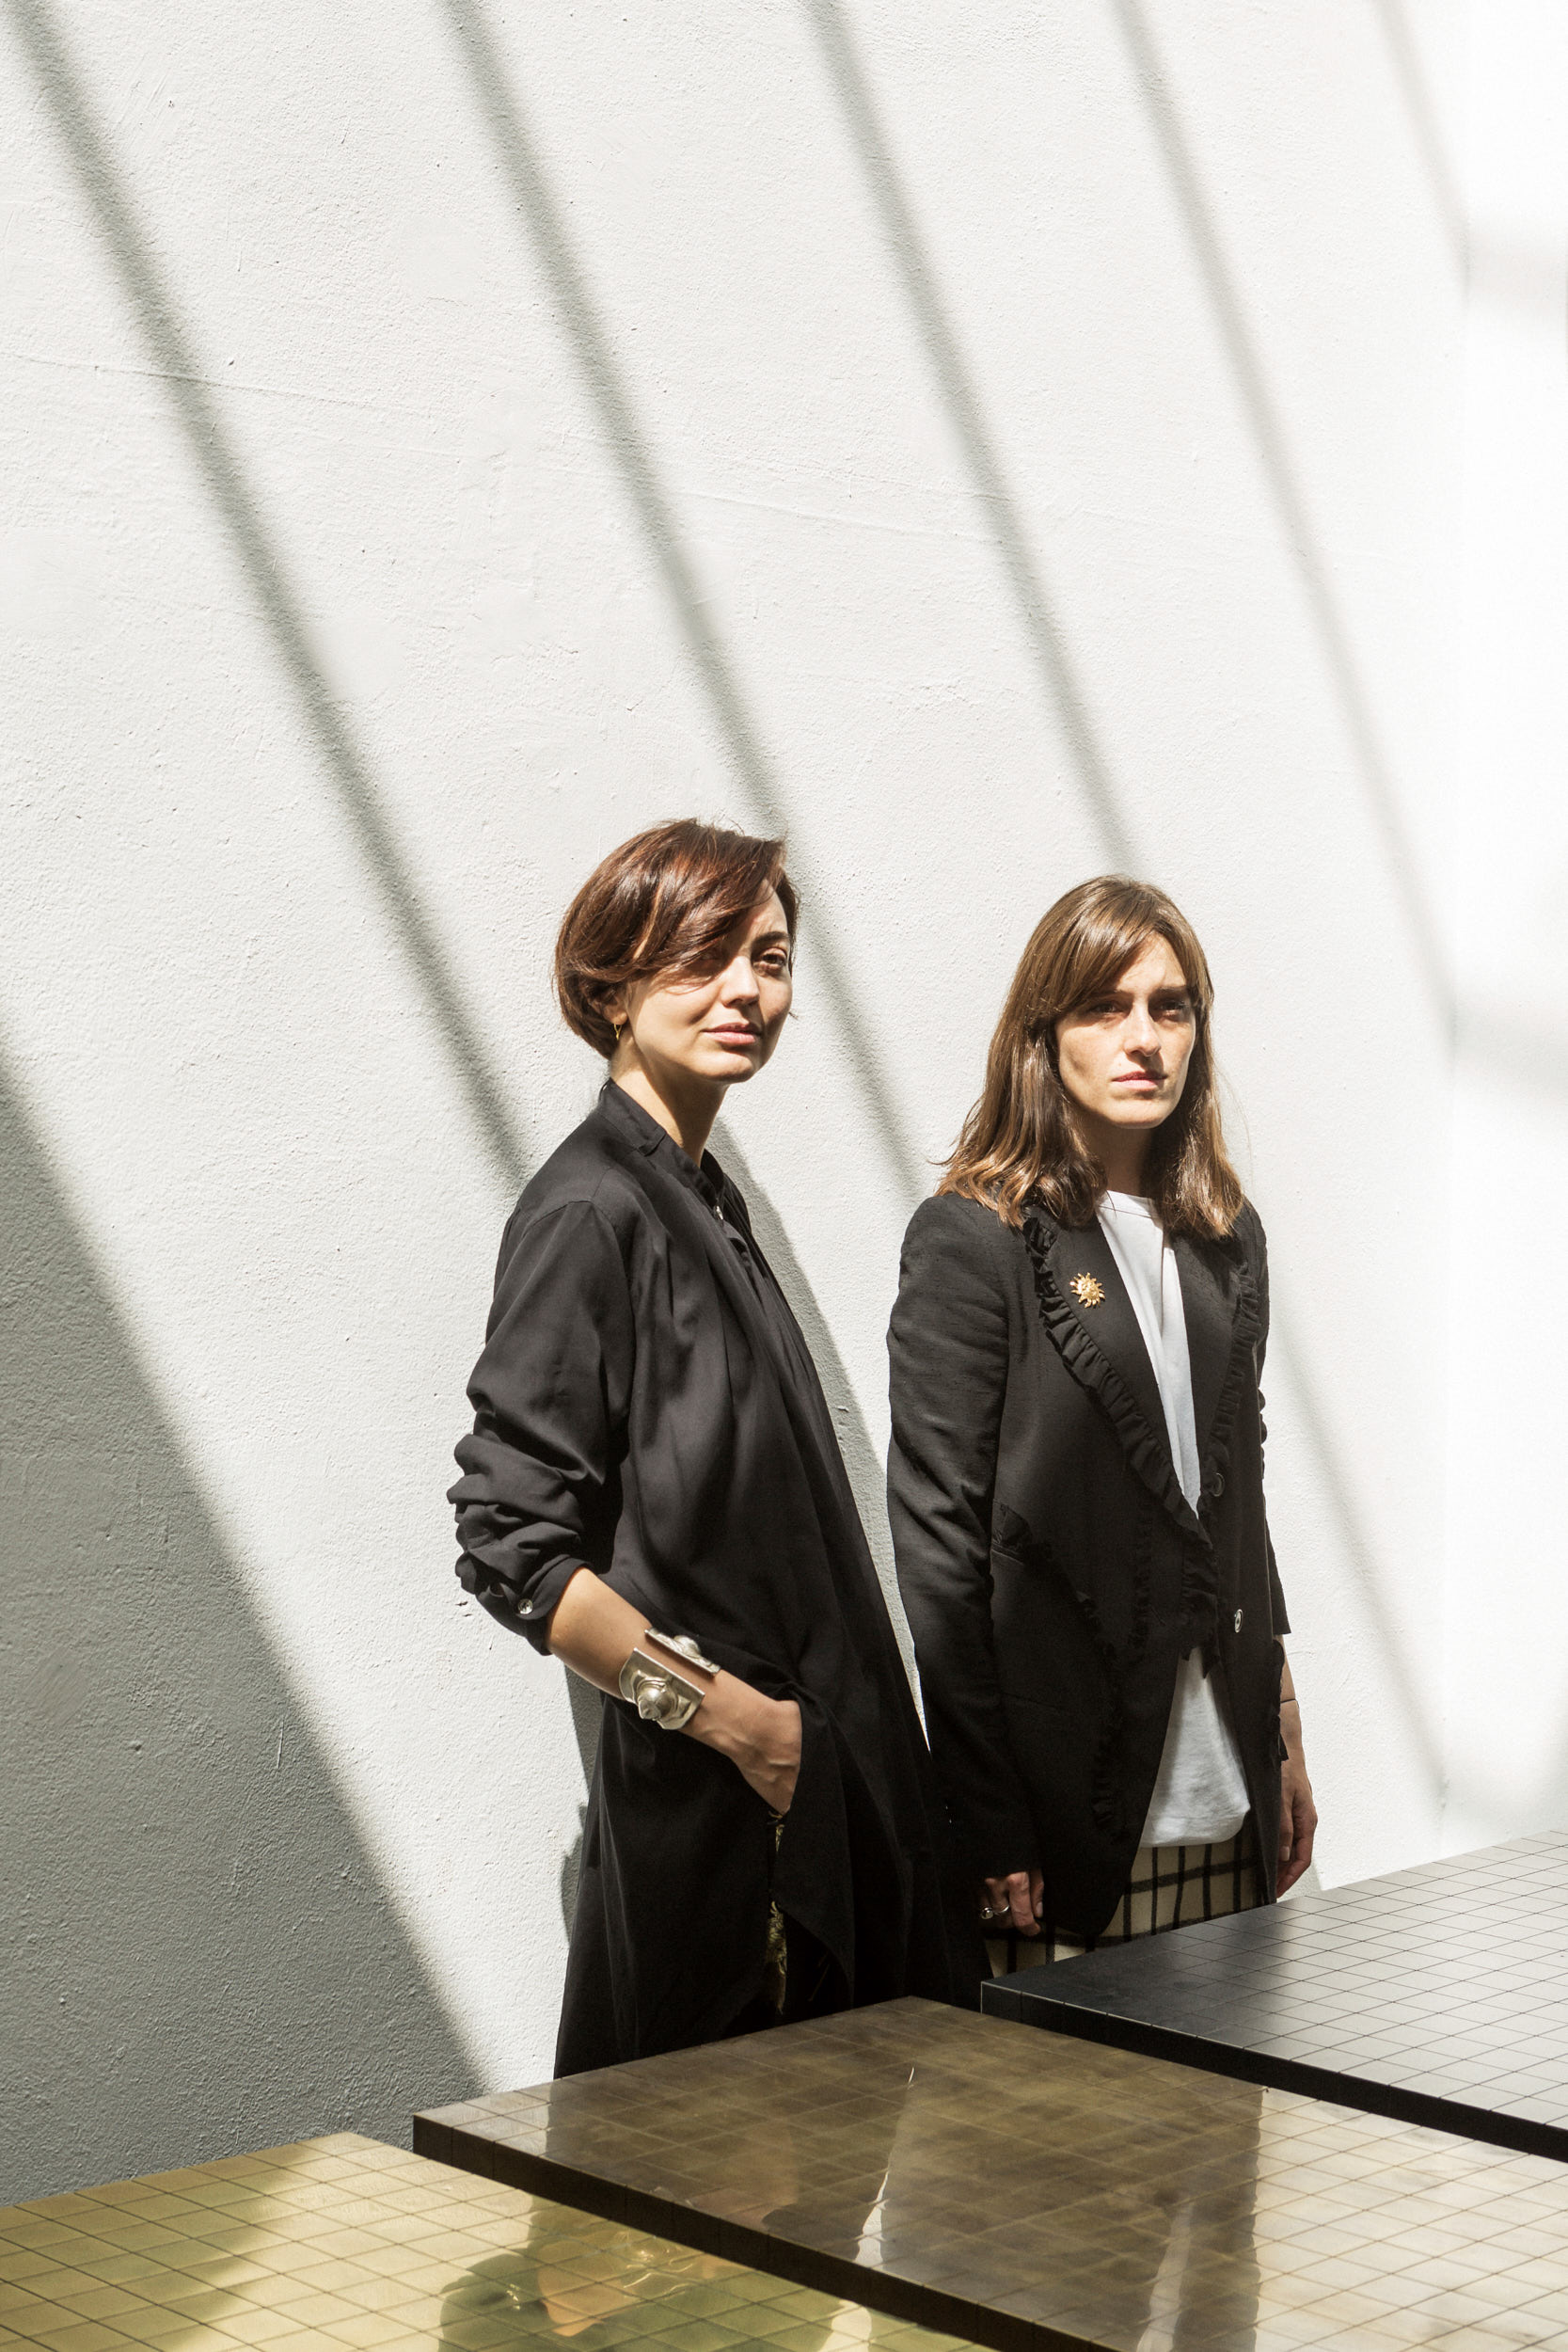 Keti Toloraia (left) and Nata Janberidze (right). Photo by Mattia Iotti.